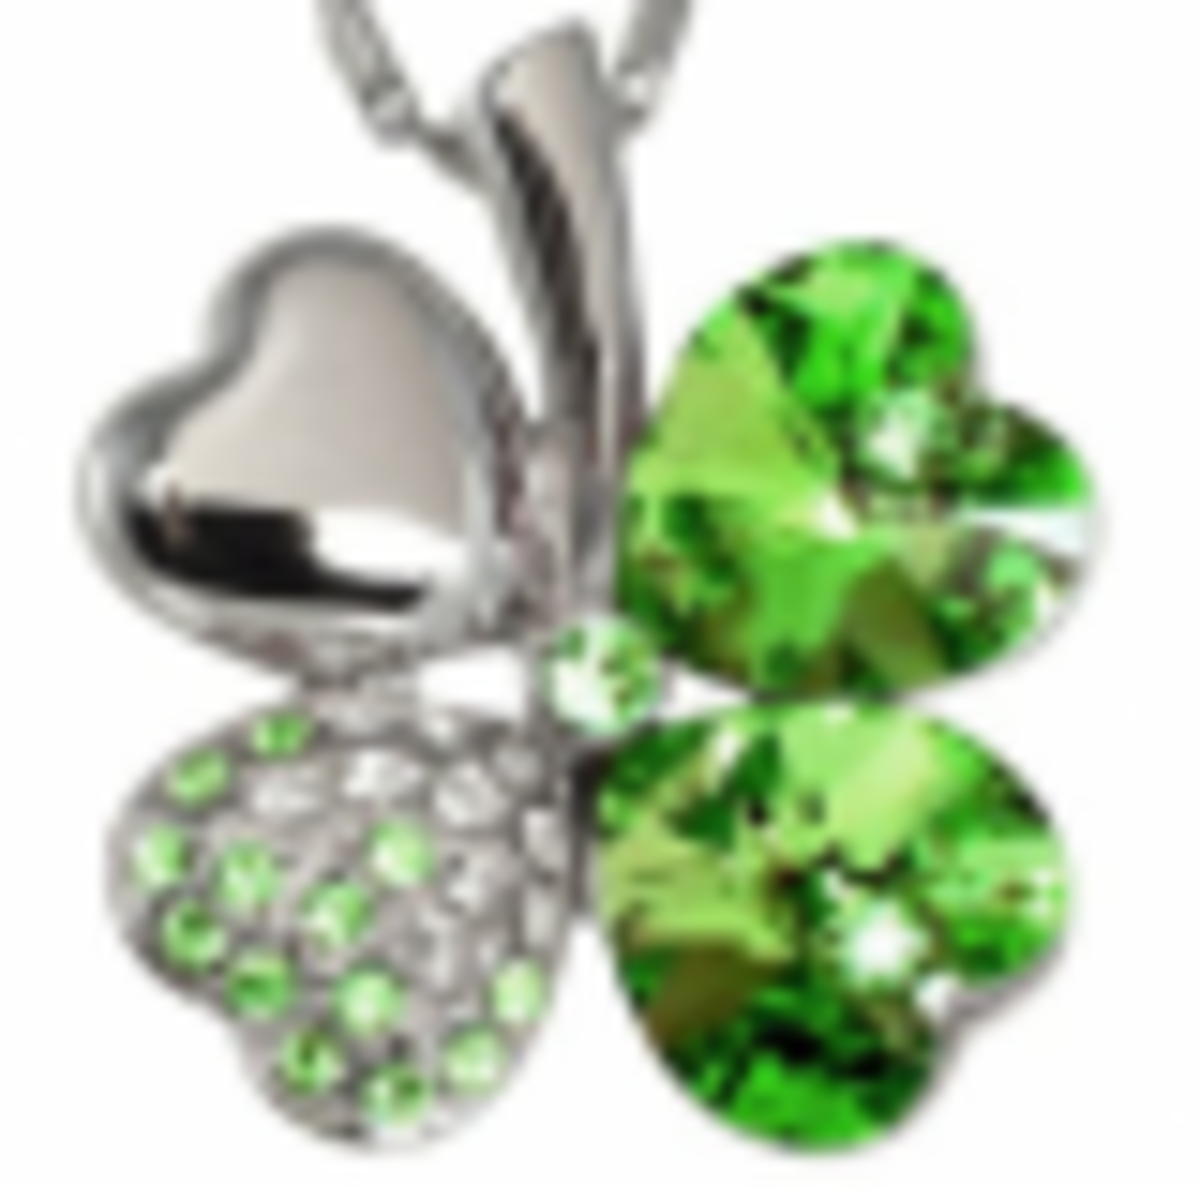 shamrock-body-piercing-jewelry-gifts-for-st-patricks-day